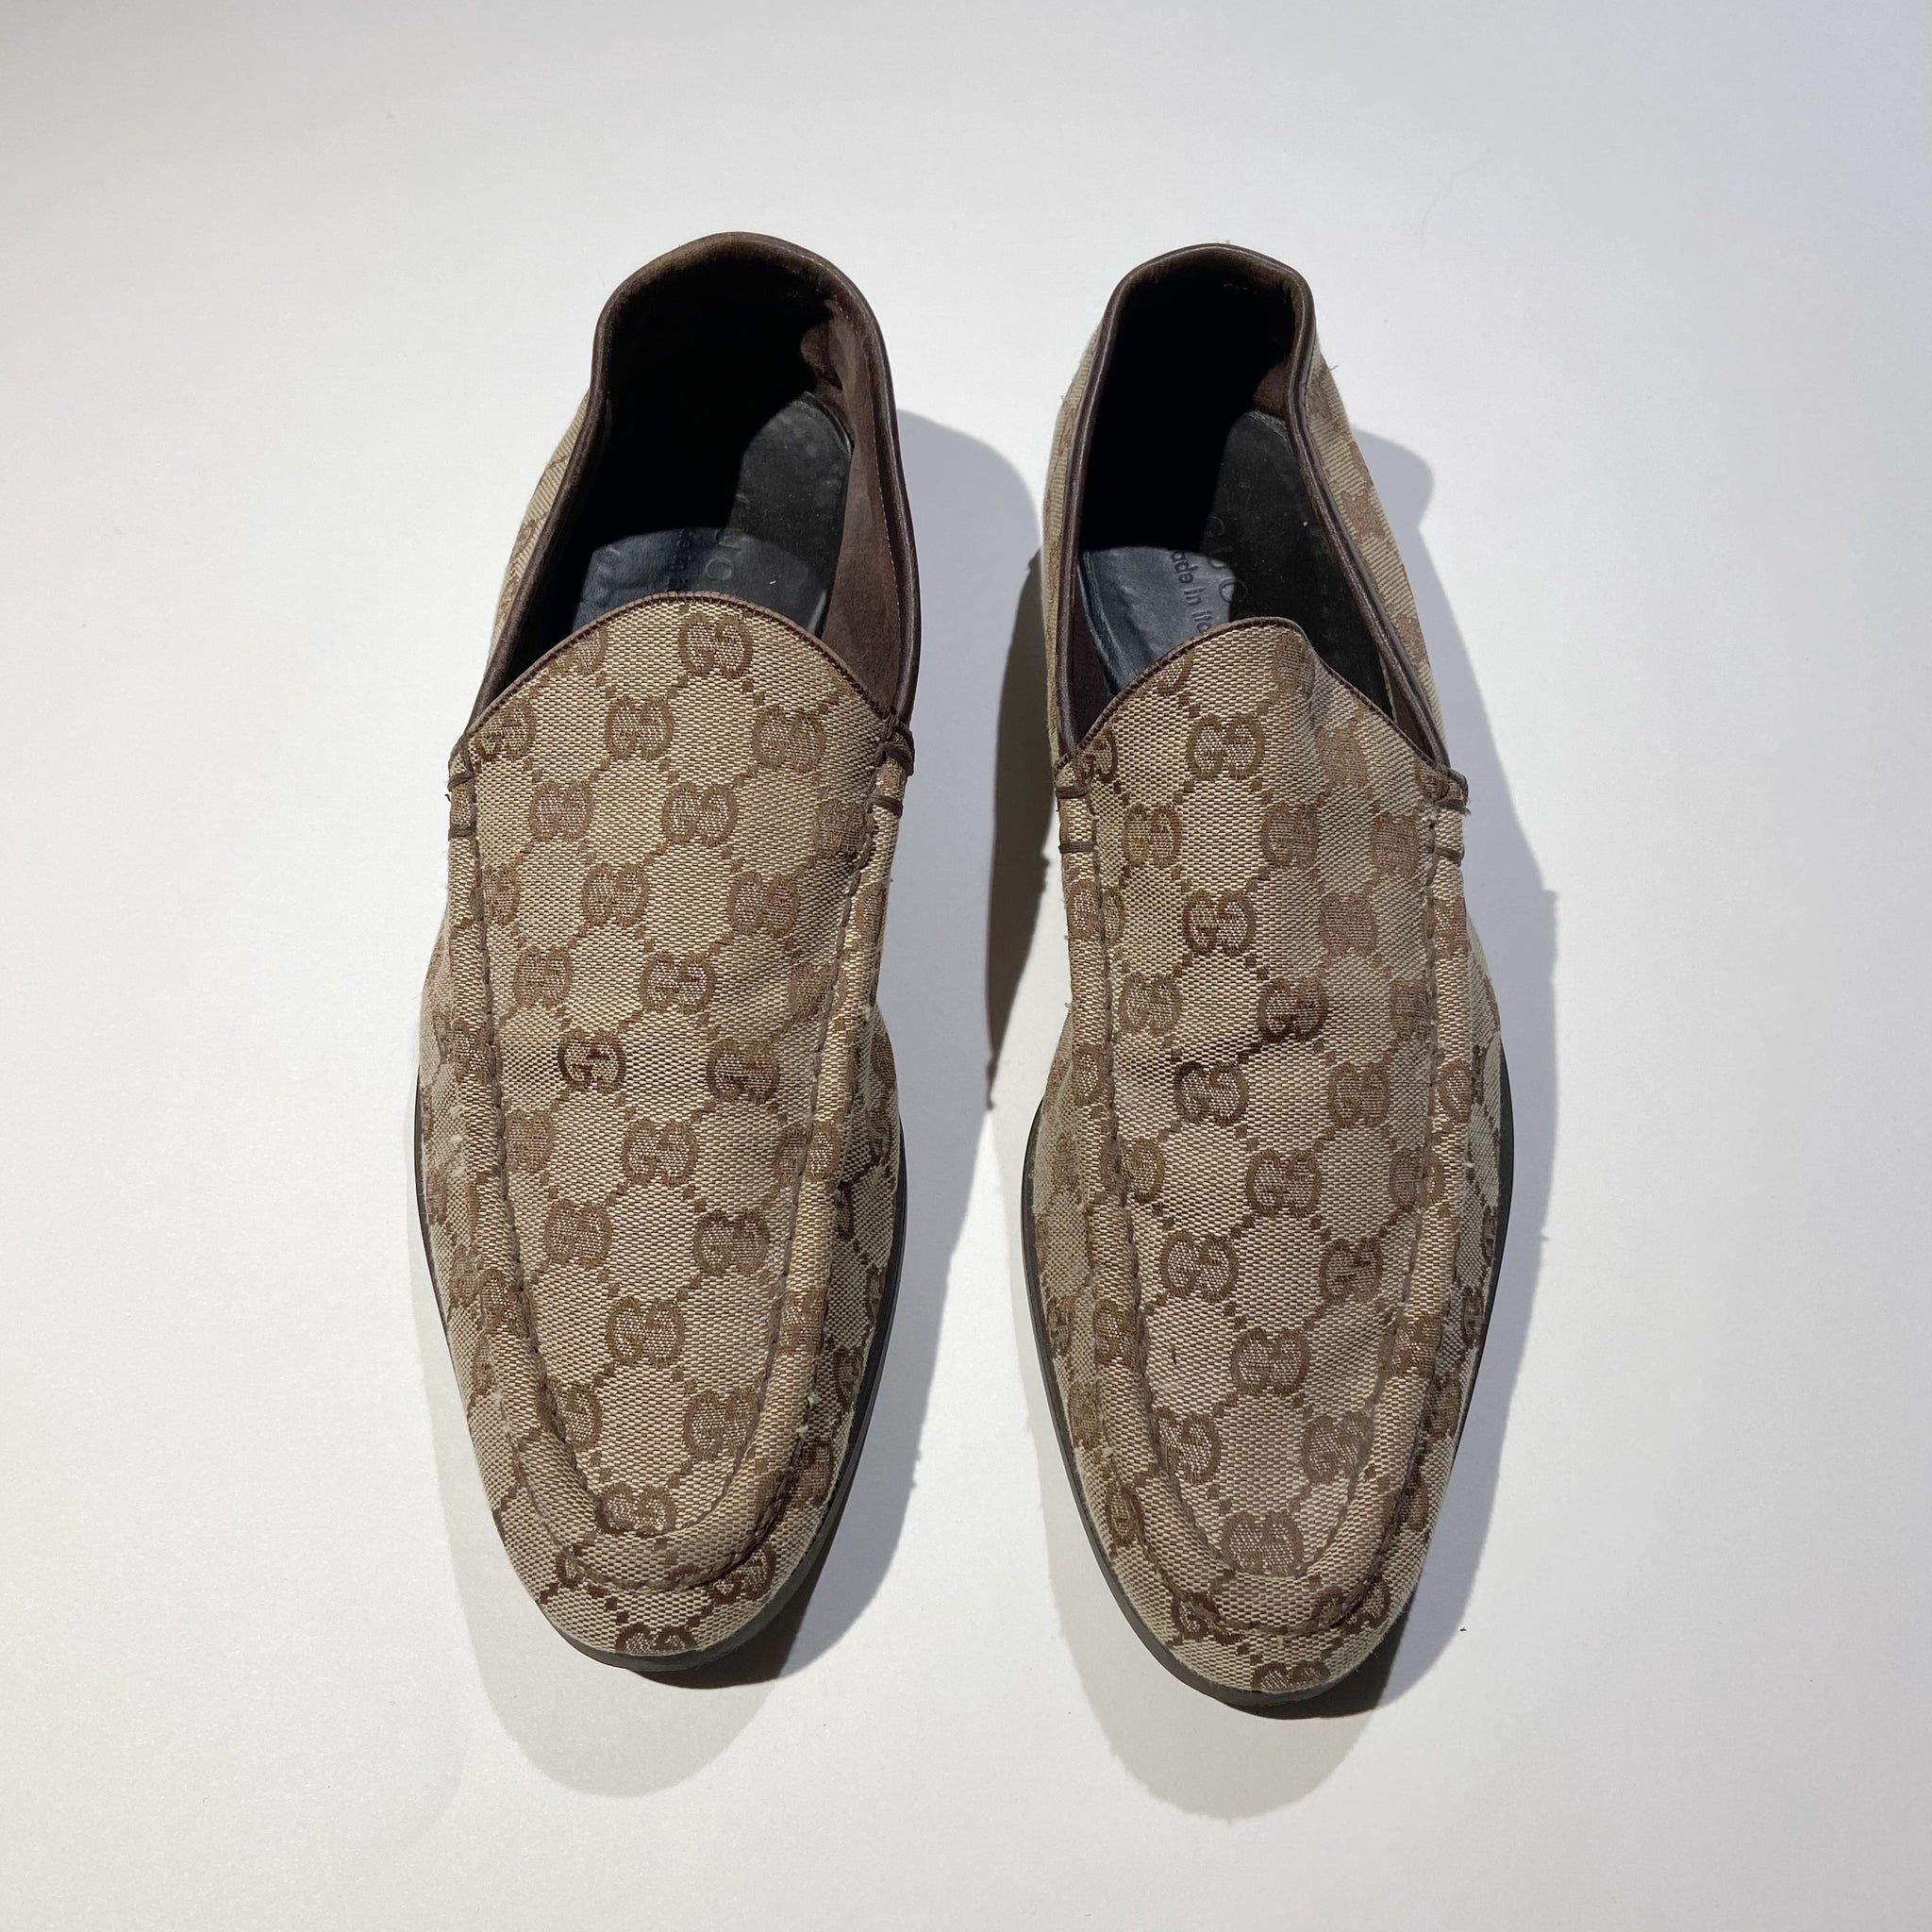 Gucci Monogram Loafers